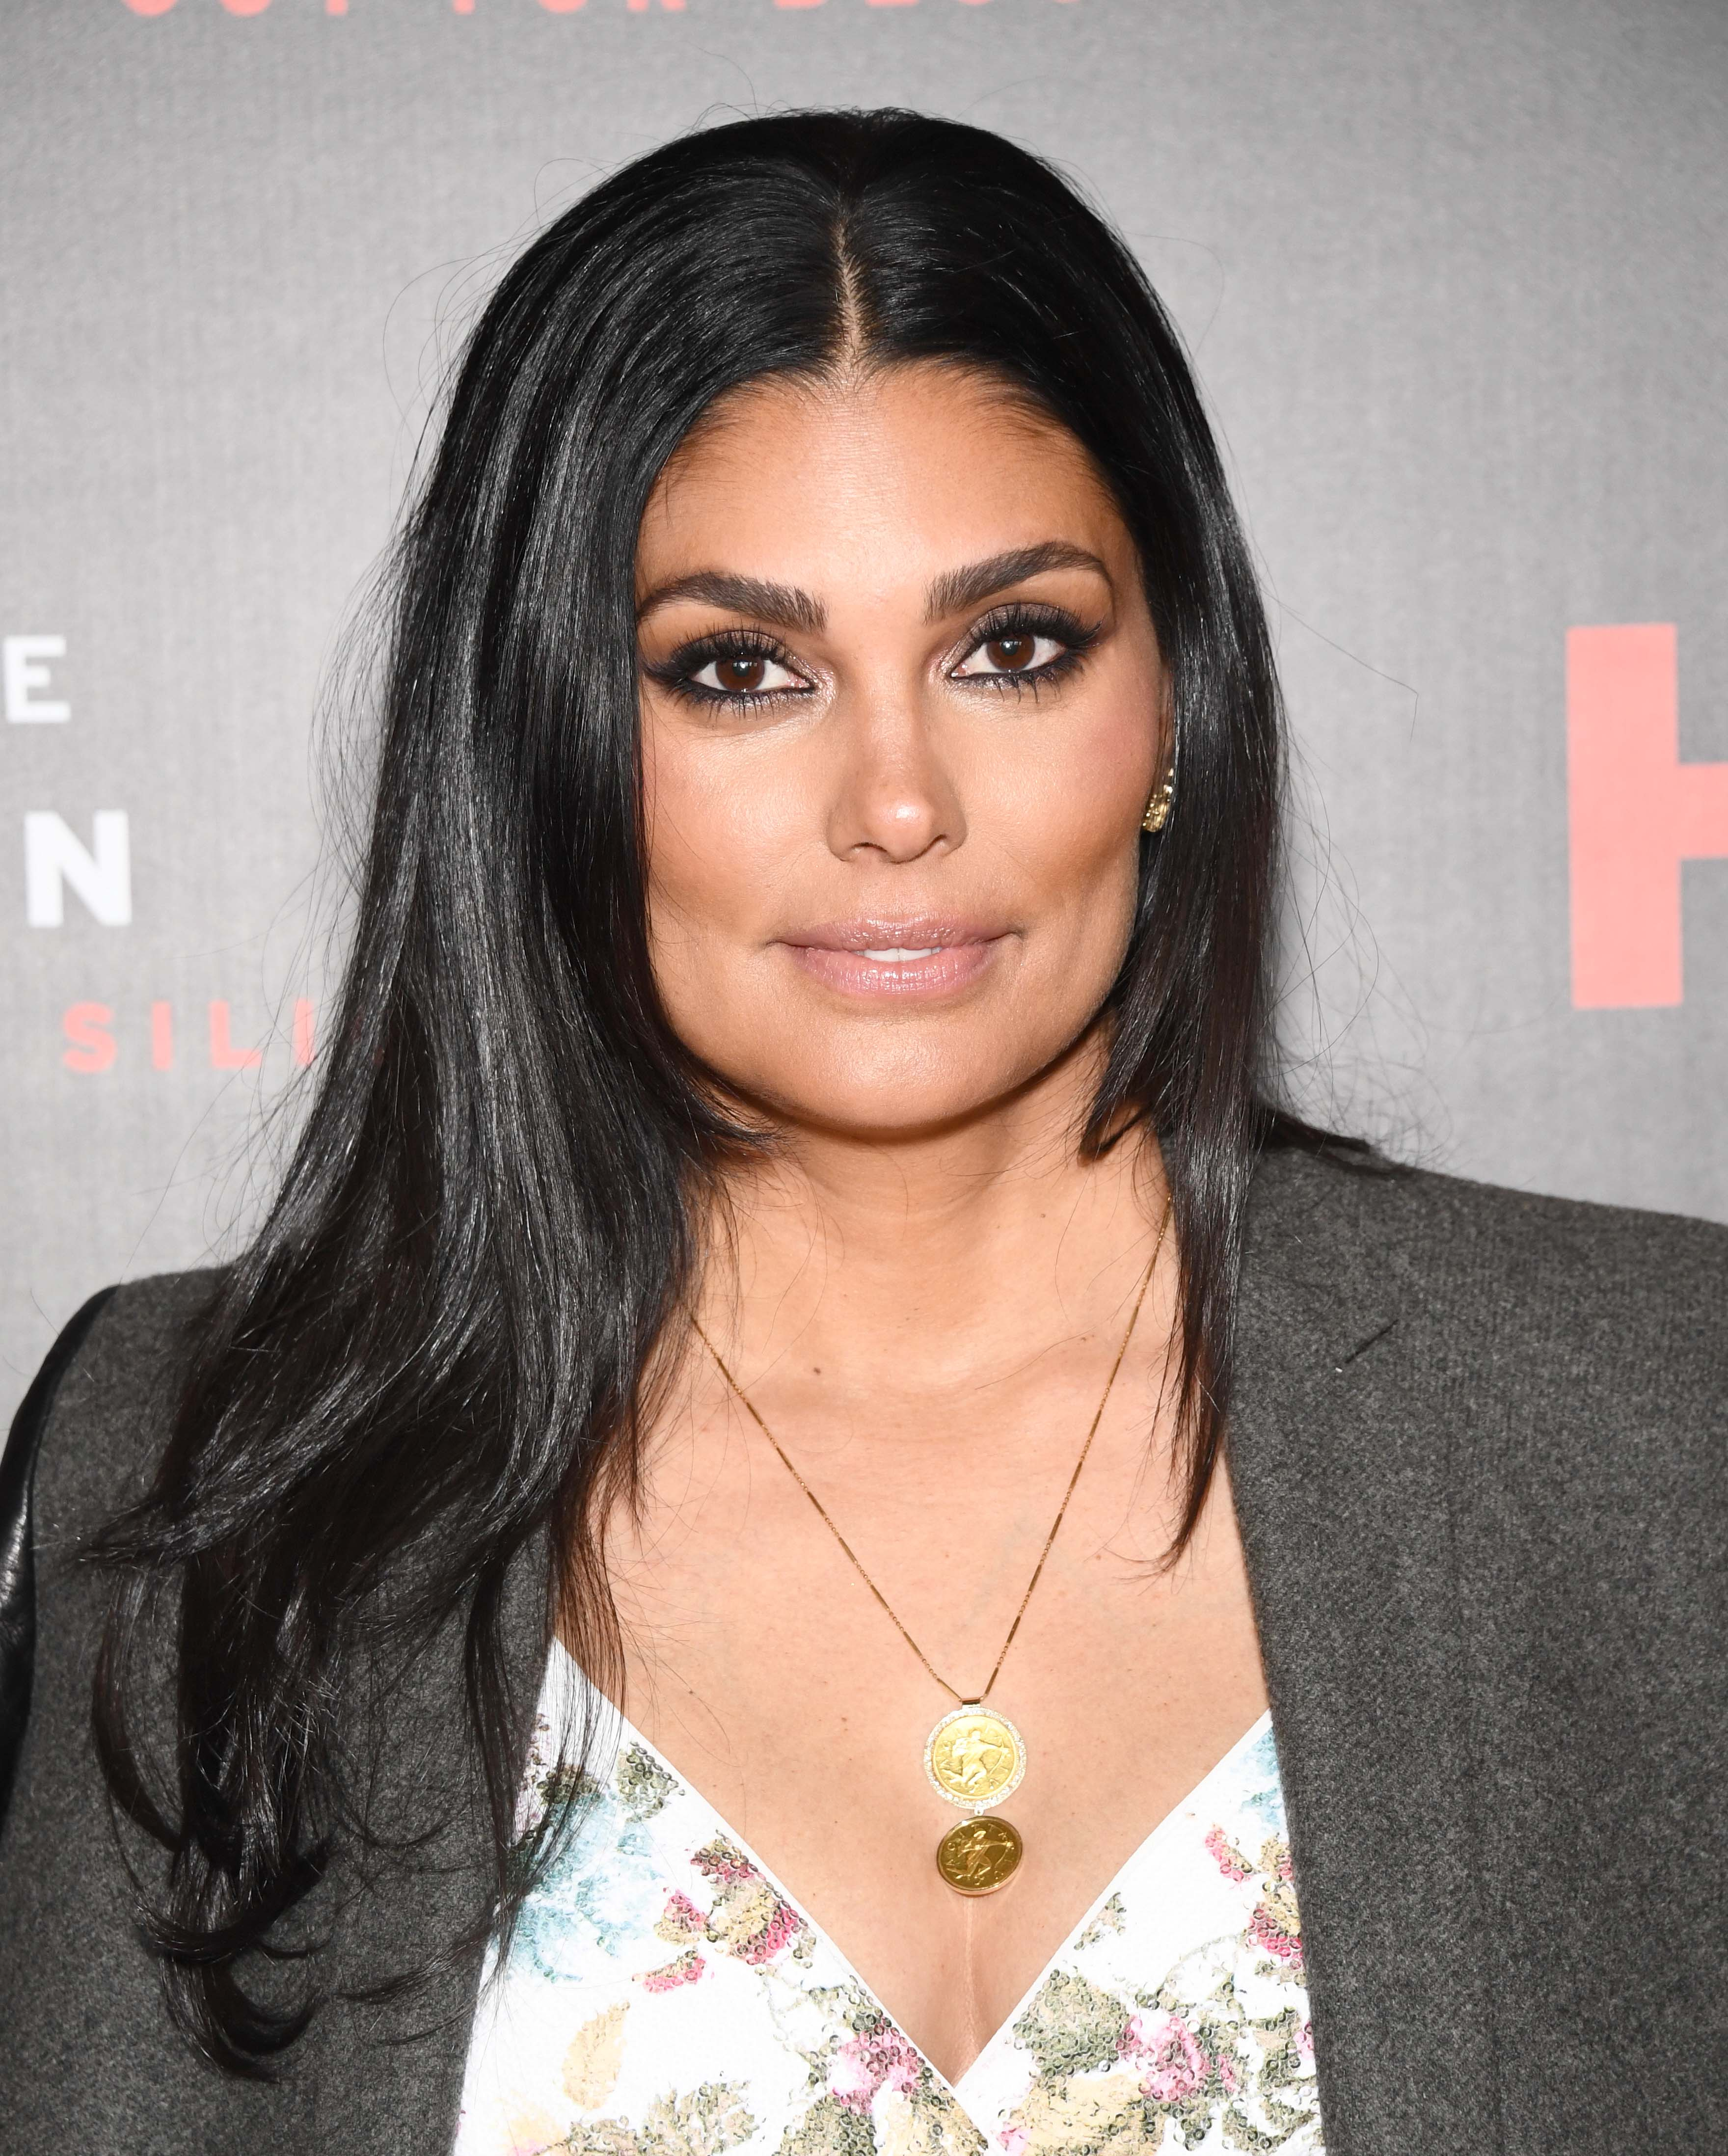 """Rachel Roy attending the premiere of  HBO's """"The Inventor"""" in February 2019 in New York.   Photo: Getty Images"""